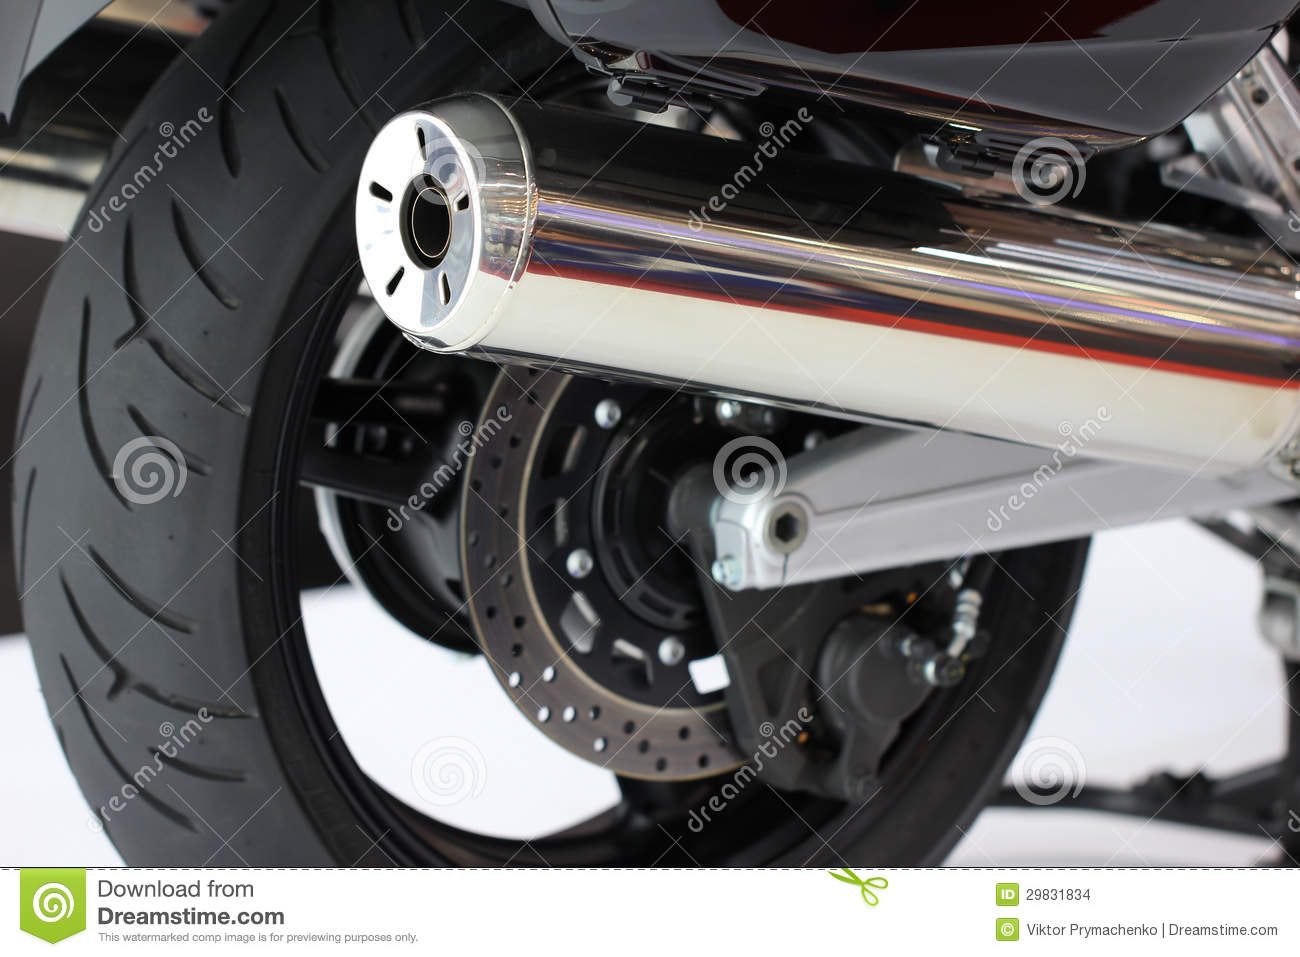 how to clean motorcycle exhaust